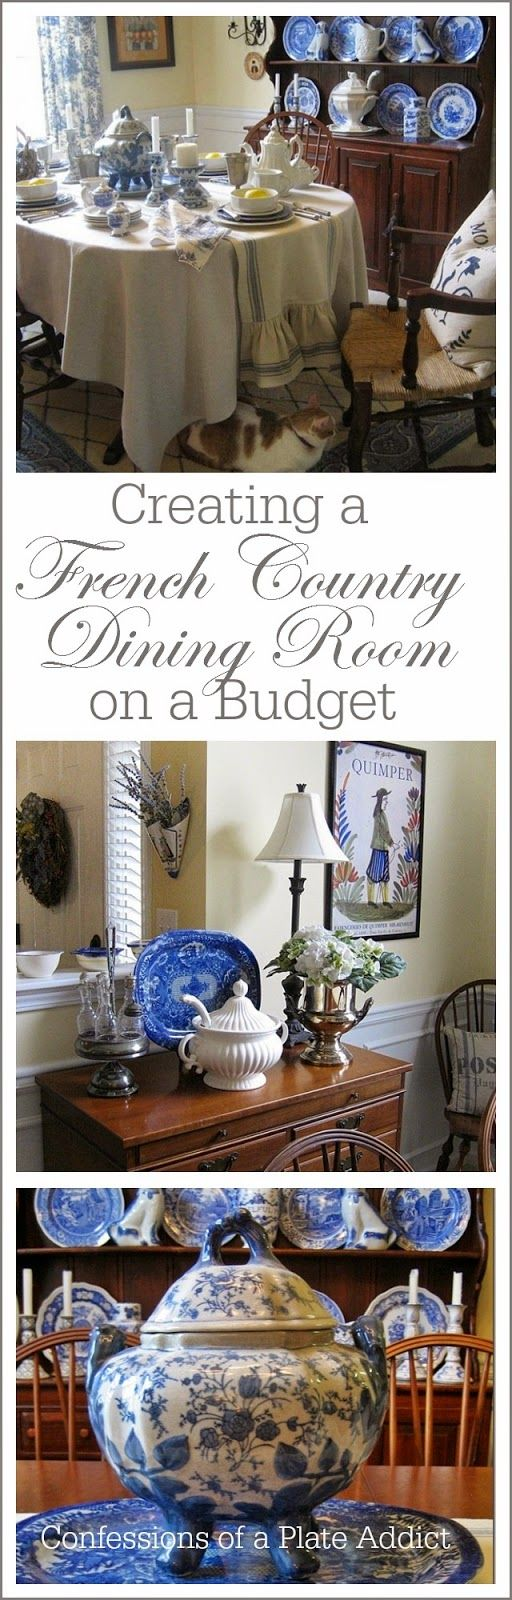 CONFESSIONS OF A PLATE ADDICT:  Creating a French Country Dining Room on a Budget